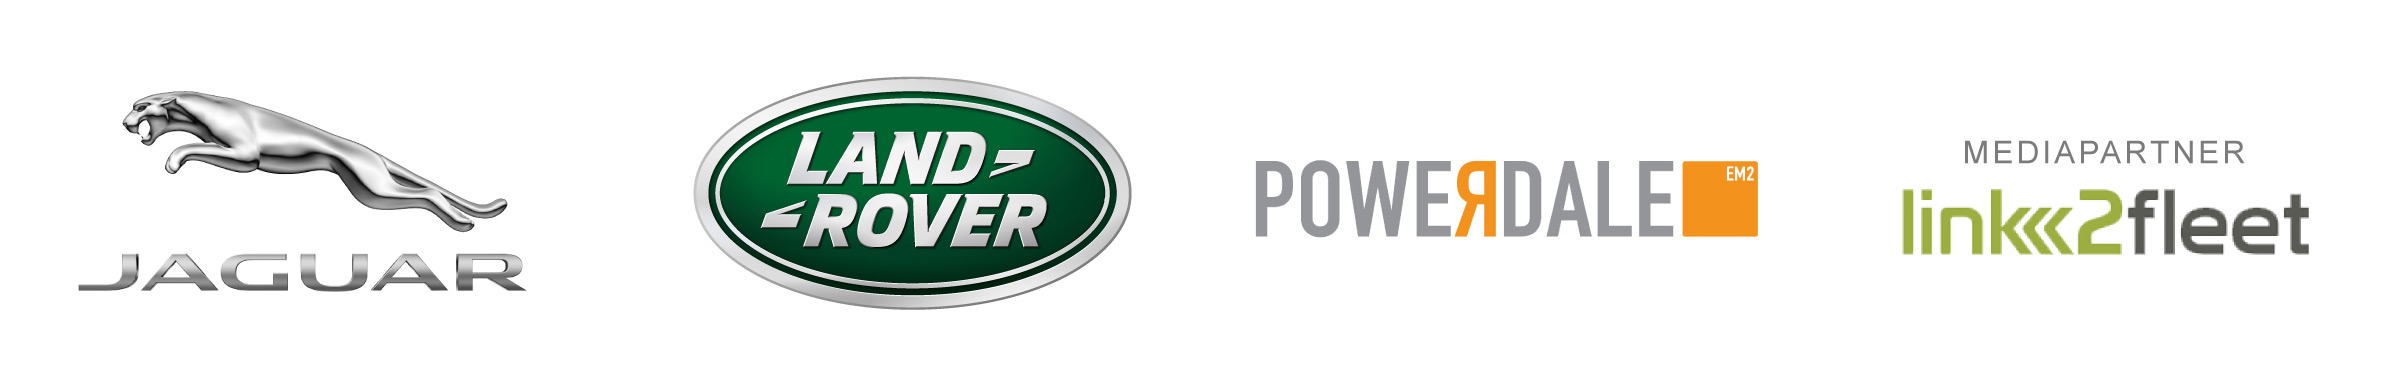 Jaguar - Land Rover - PowerDale - Link2Fleet